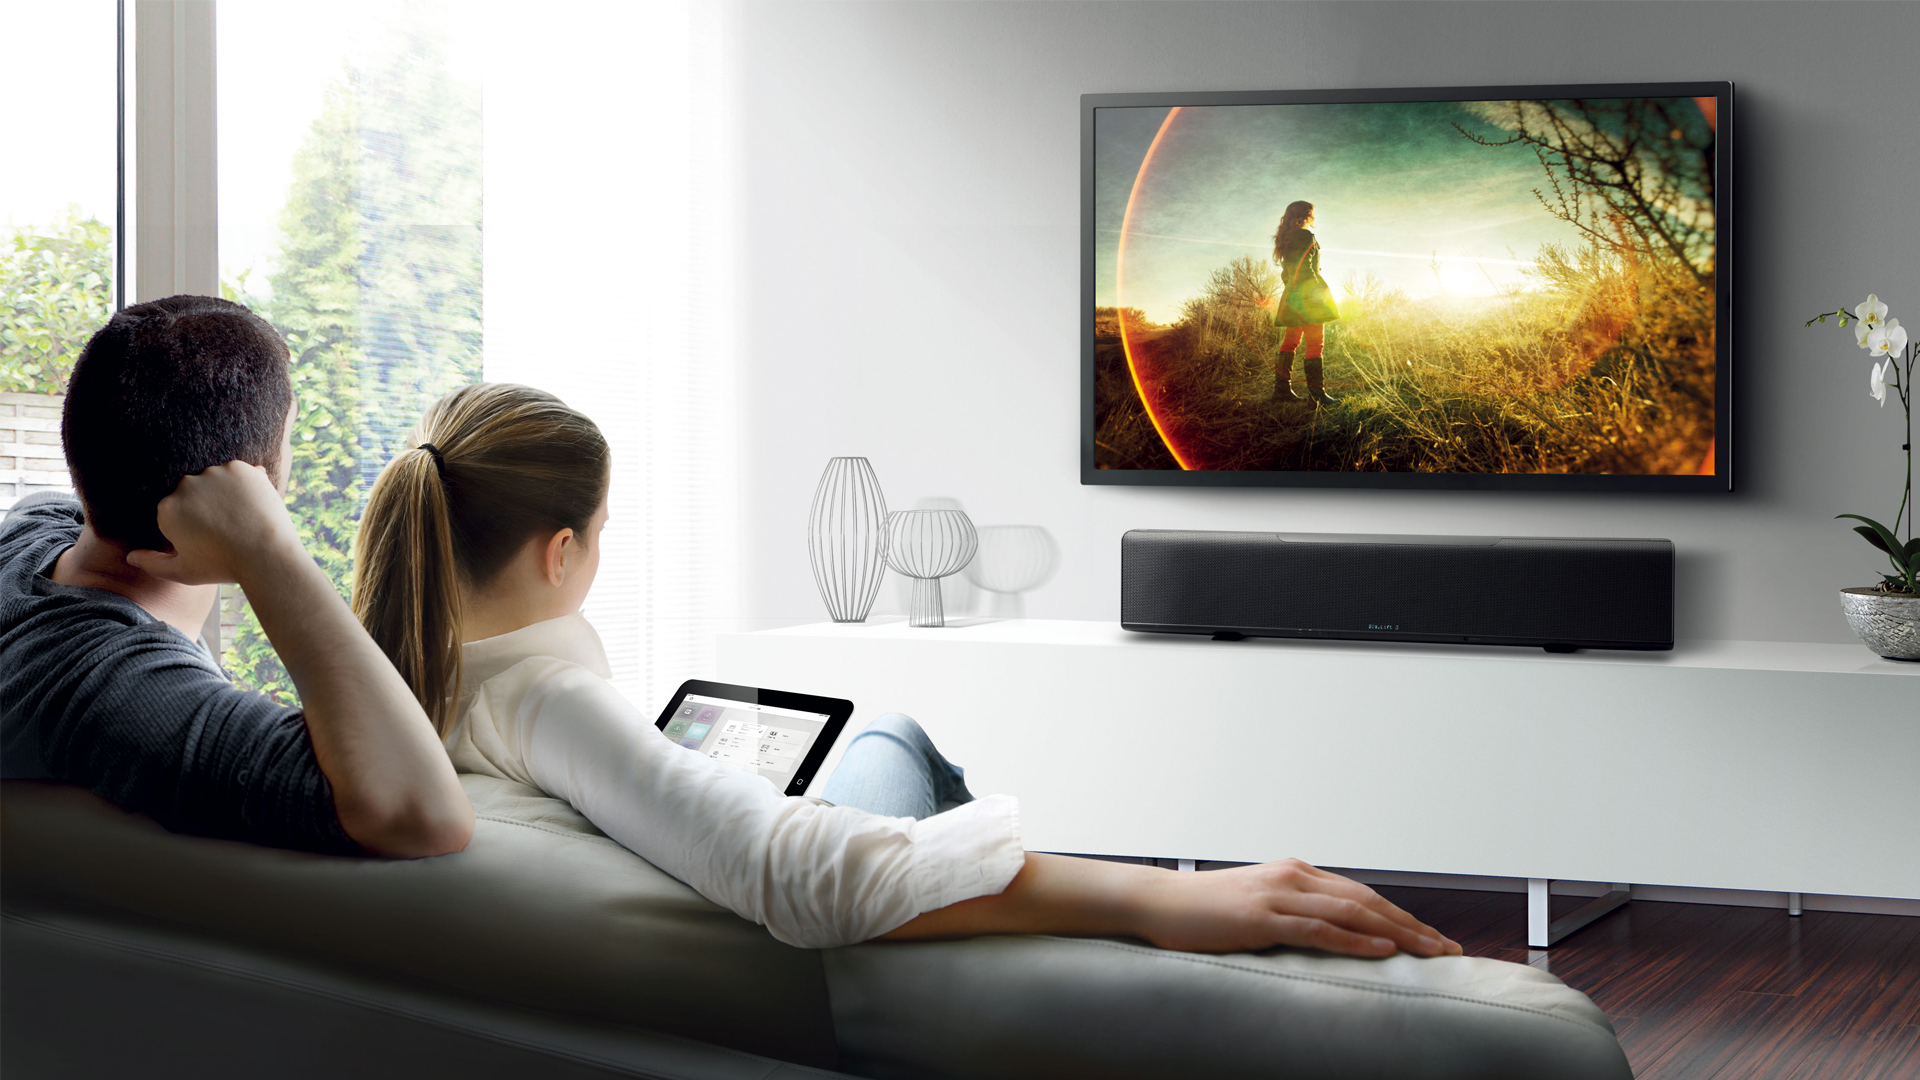 Will We Ever Have Home Cinema Without Any Wires Techradar Wiring A House For Sound